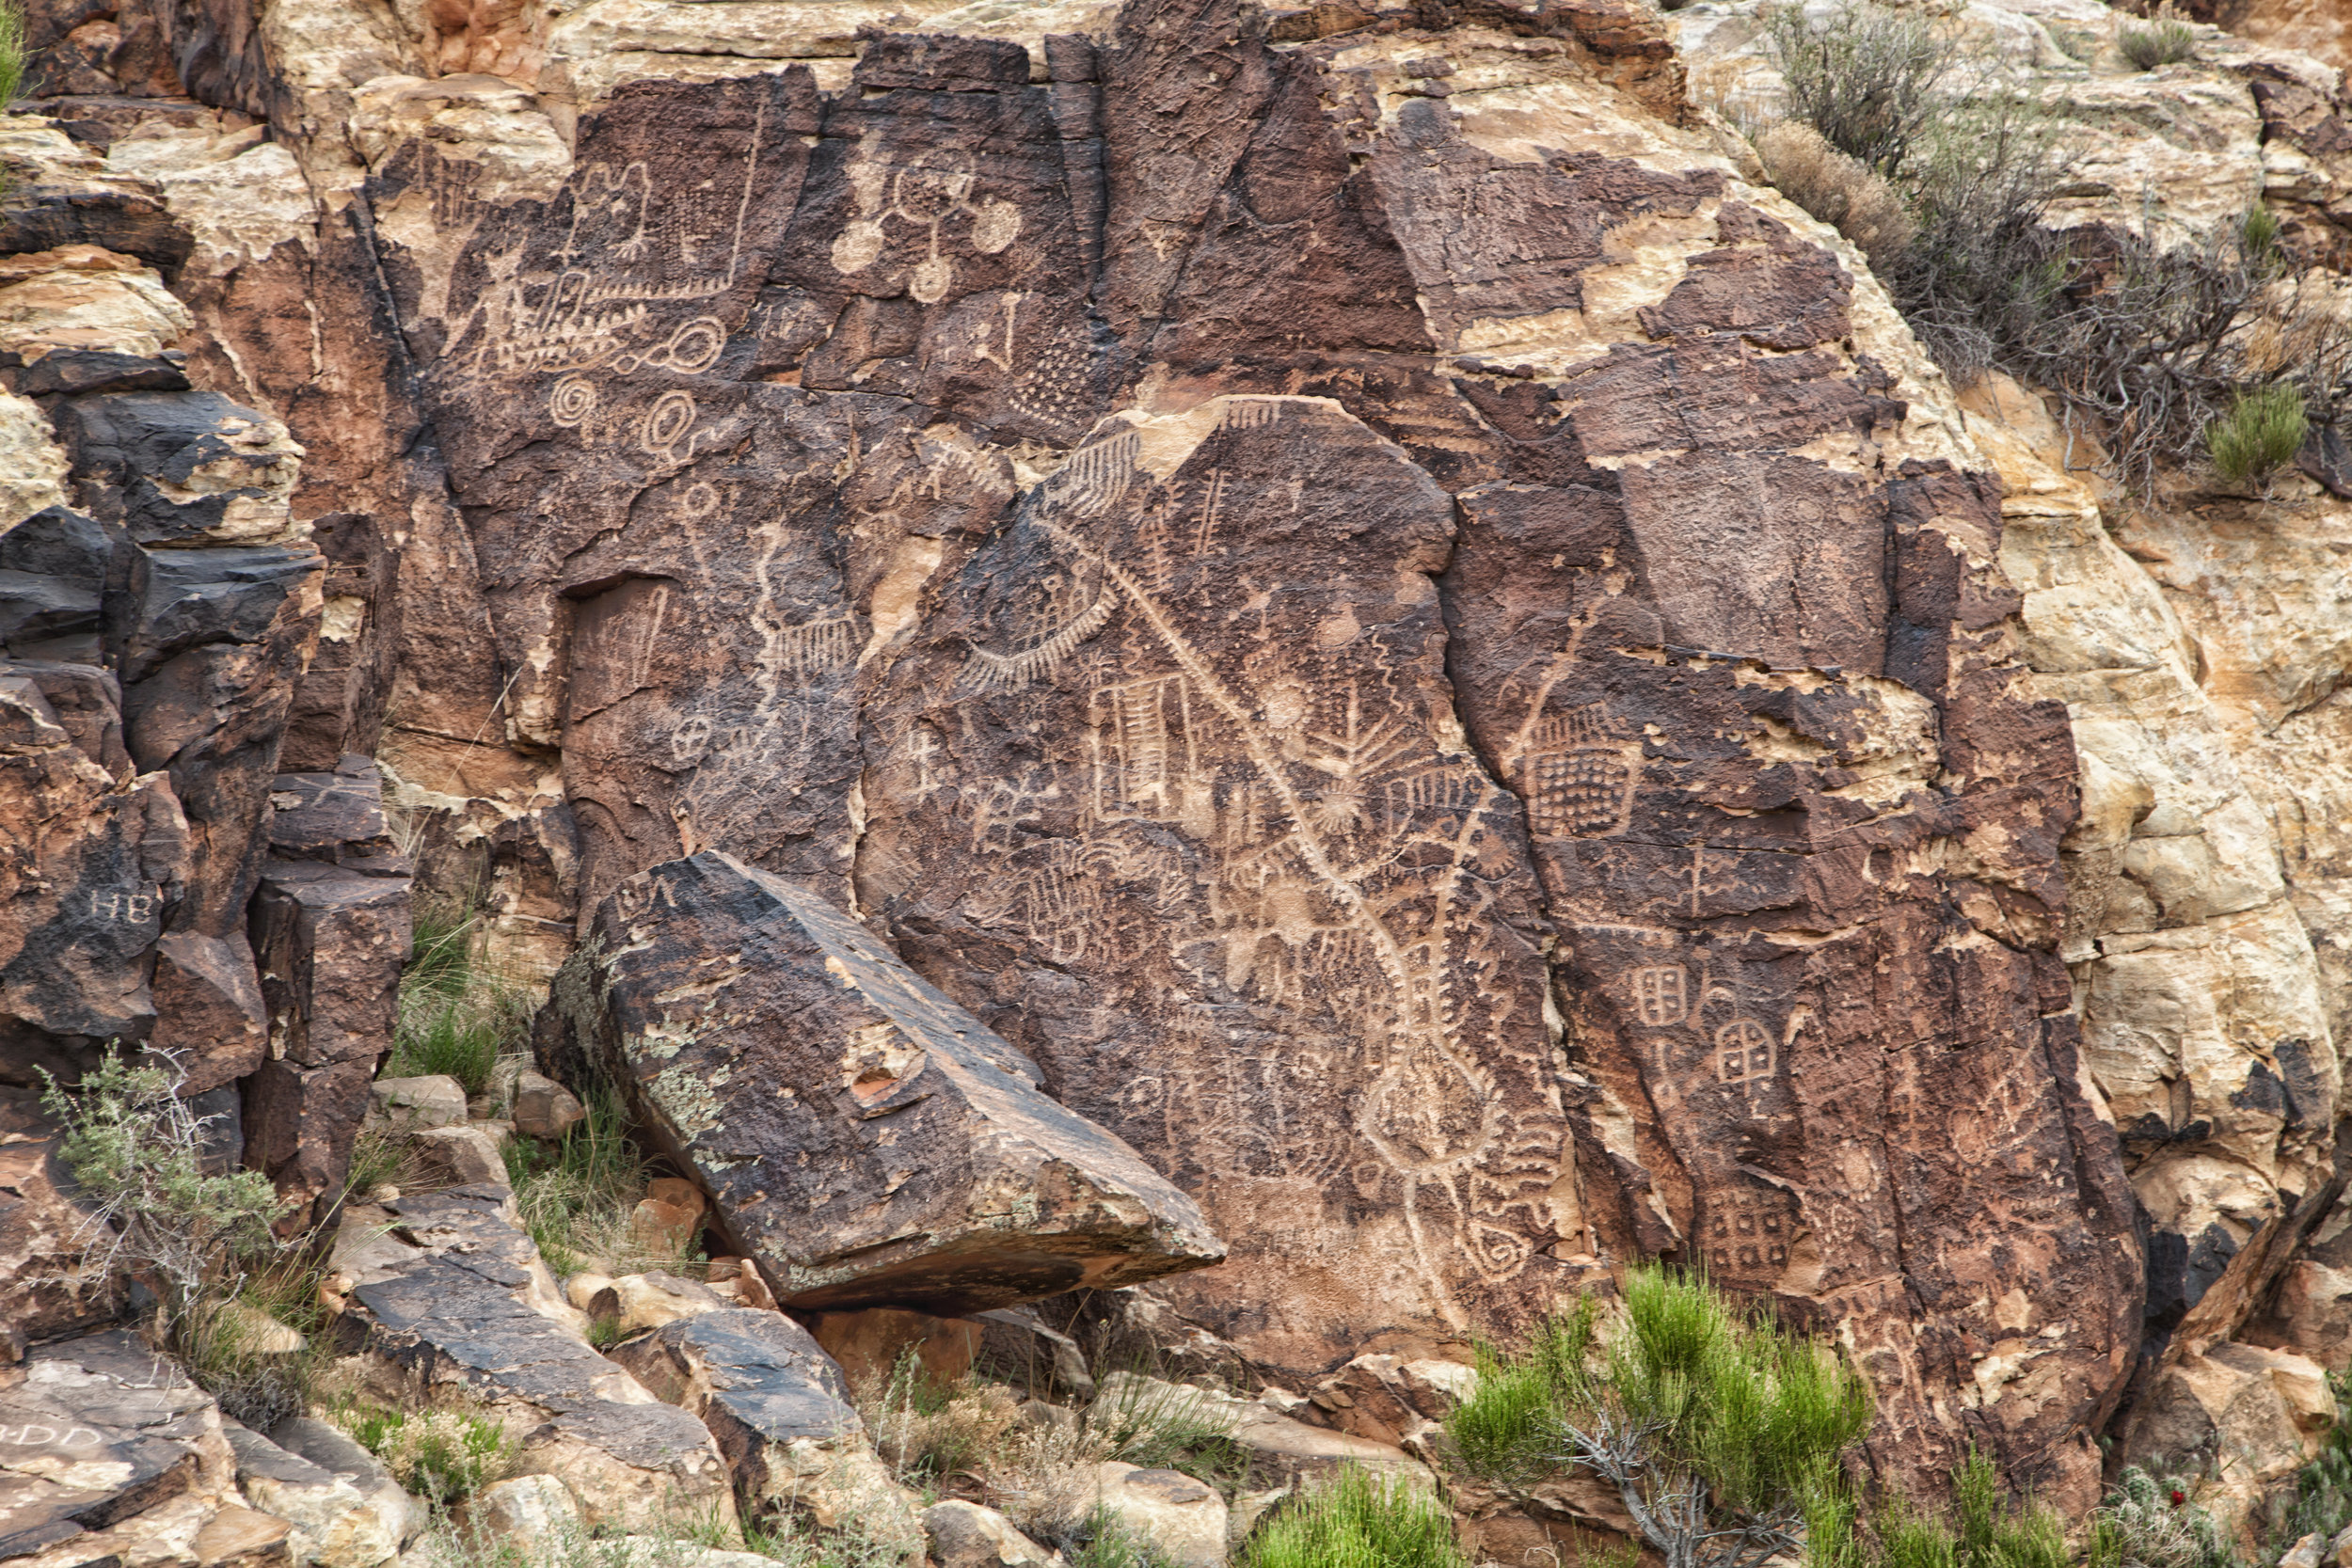 Parowan Gap Petroglyphs Photo: Alex Santiago Courtesy of Cedar City Brian Head Tourism Bureau